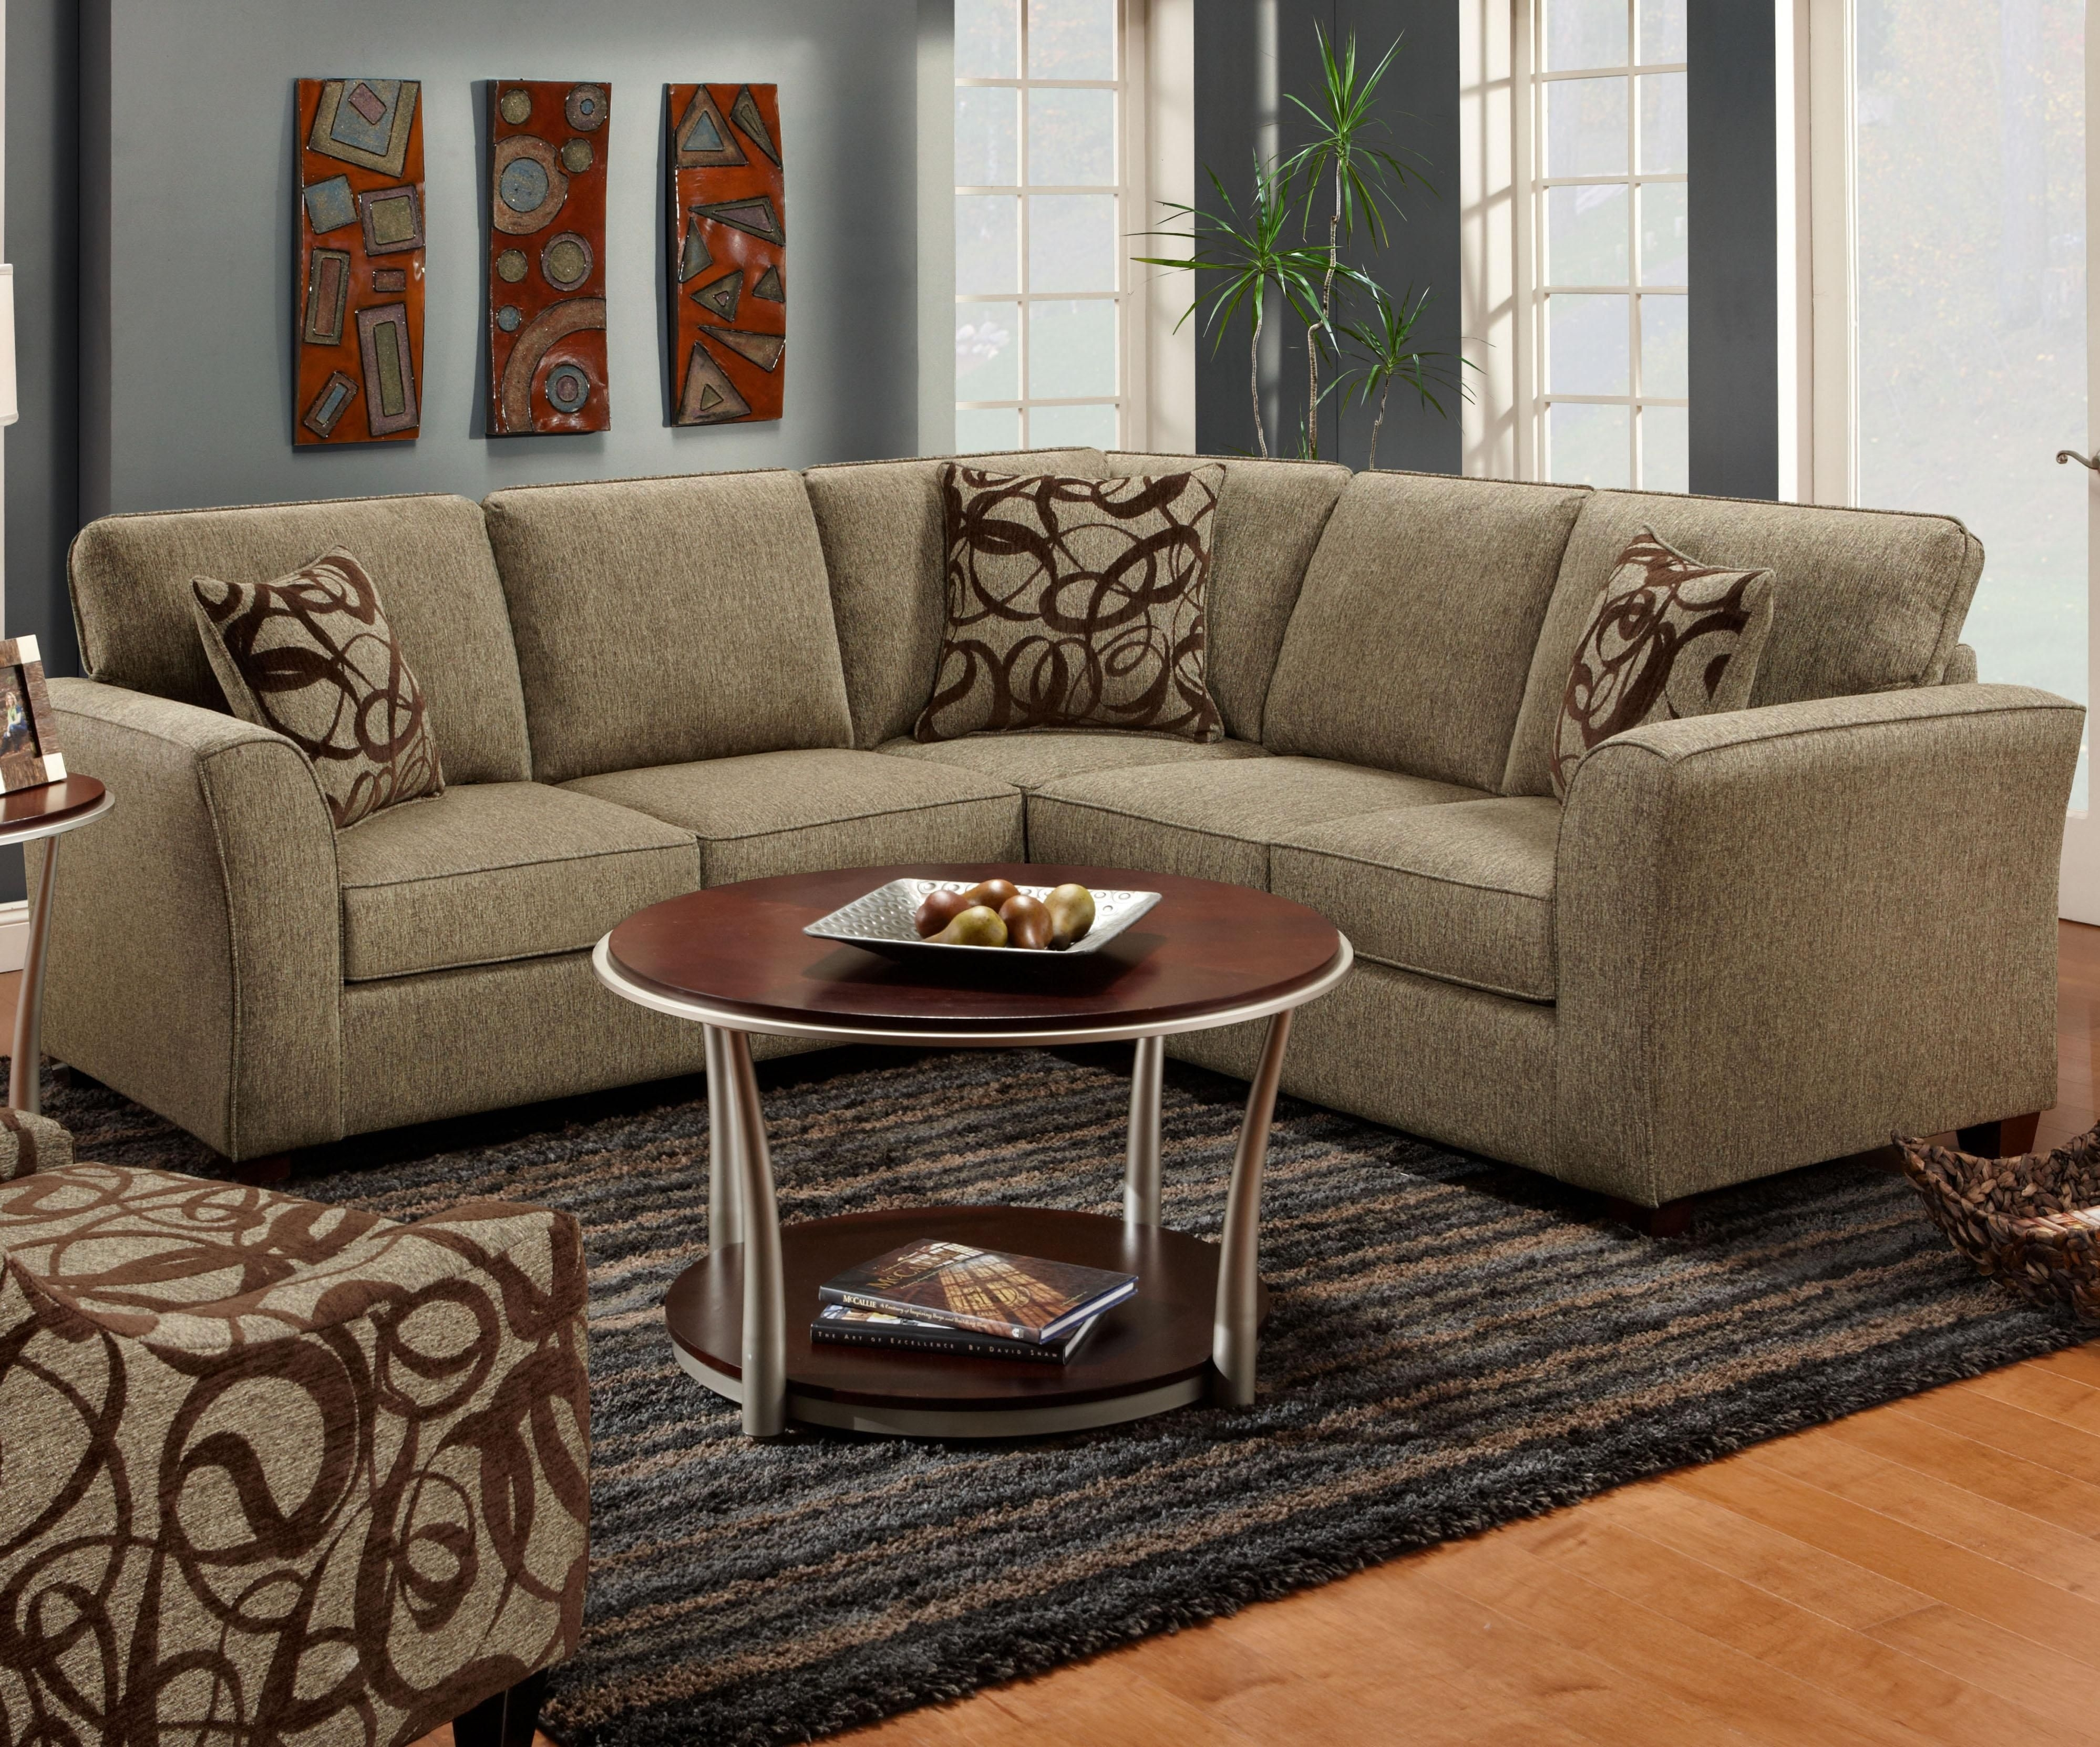 1295-1296 2-Piece Sectional Sofafusion Furniture | For The Home intended for Jackson Ms Sectional Sofas (Image 1 of 10)